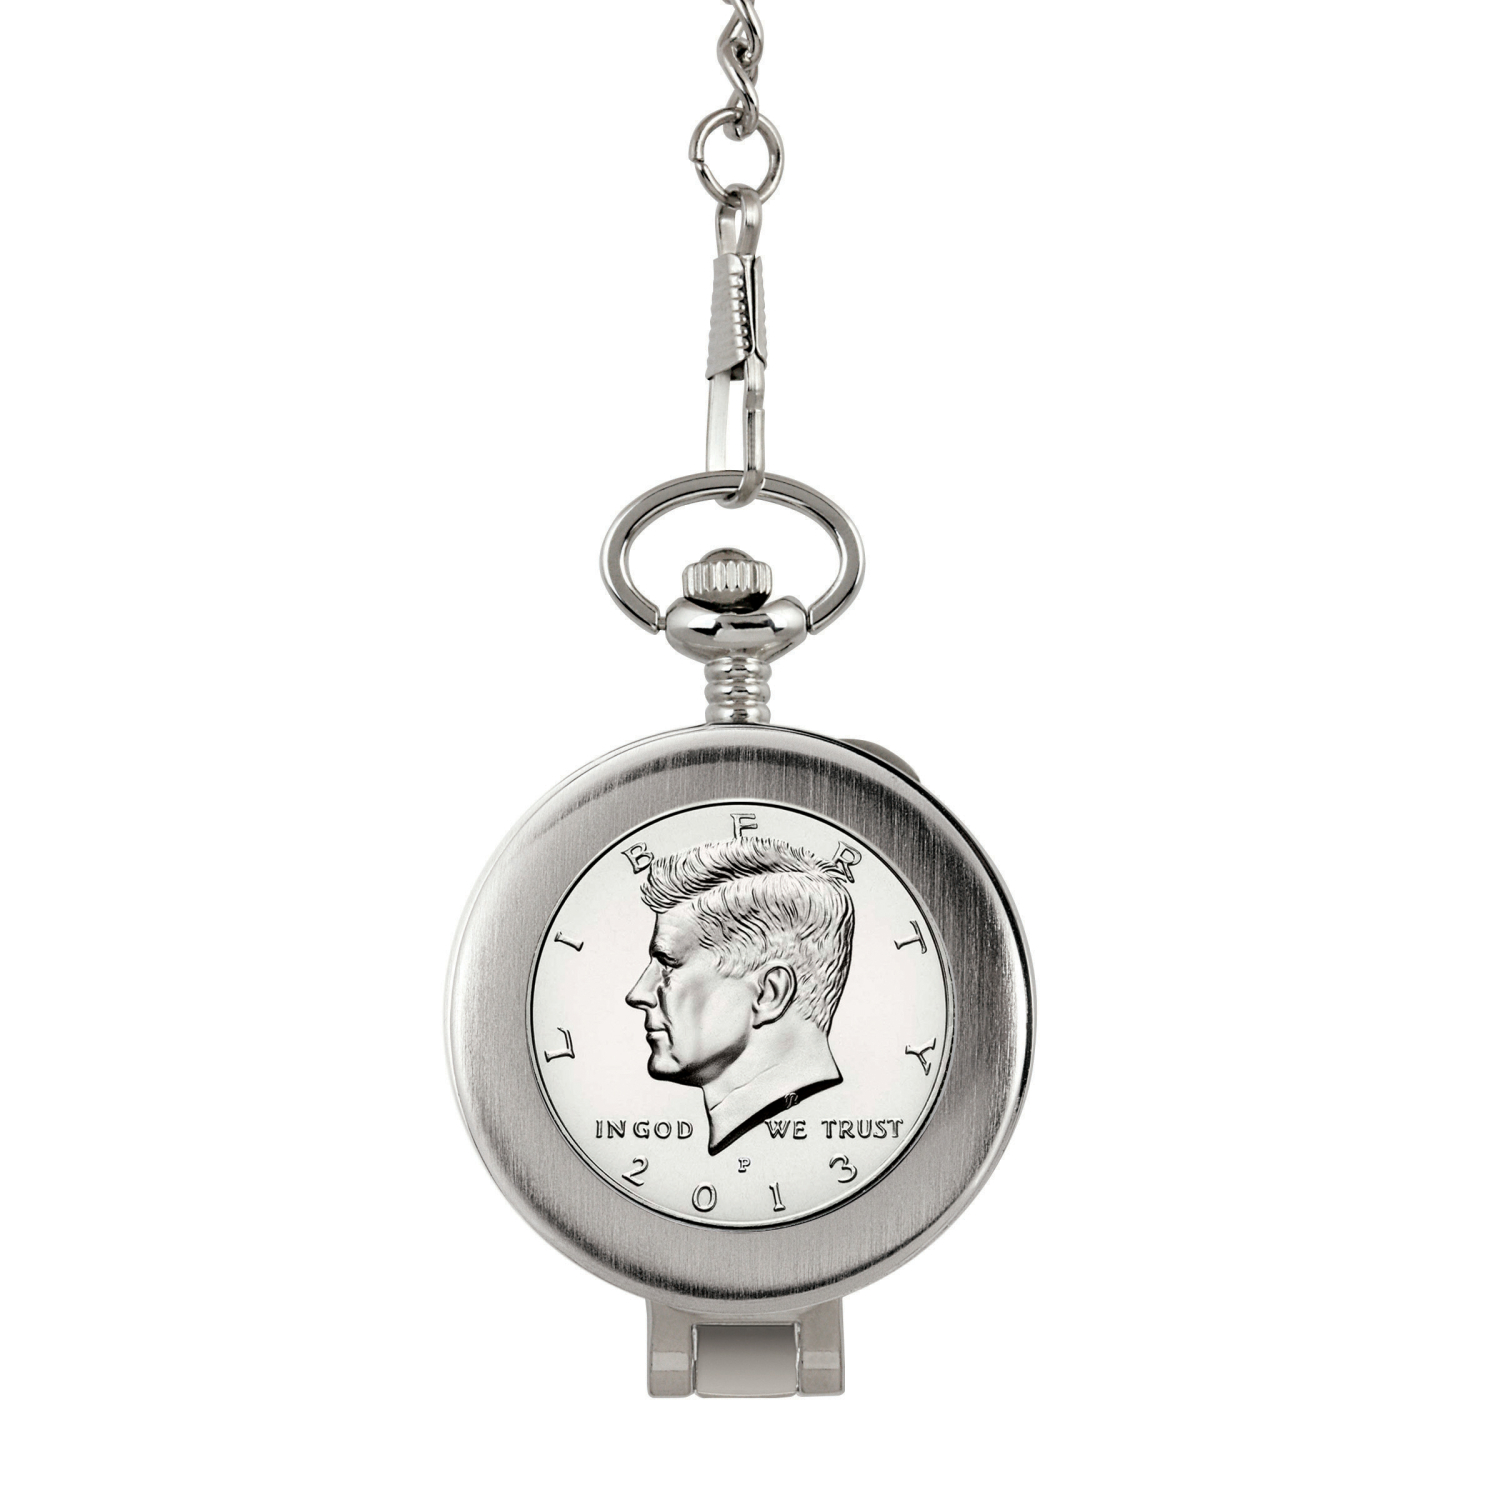 Proof Jfk Half Dollar Coin Pocket Watch With Skeleton Movement - Magnifying Glass - Black Dial With Gold Roman Numerals